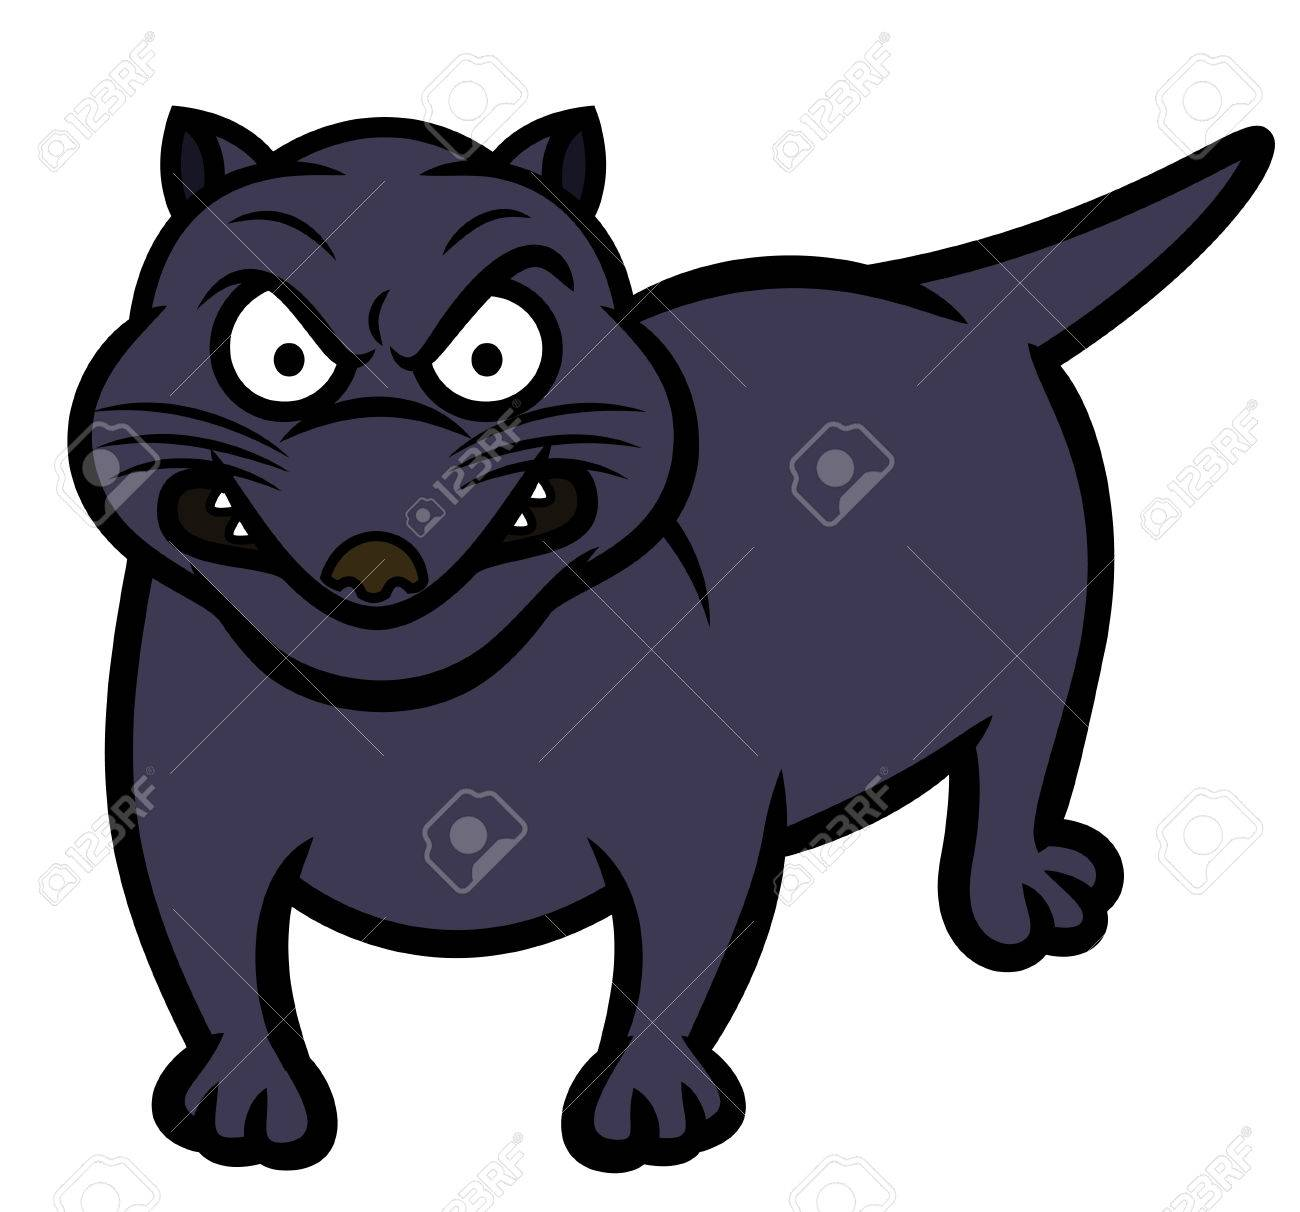 tasmanian devil animal cartoon royalty free cliparts vectors and rh 123rf com tasmanian devil clipart free tasmanian devil clipart